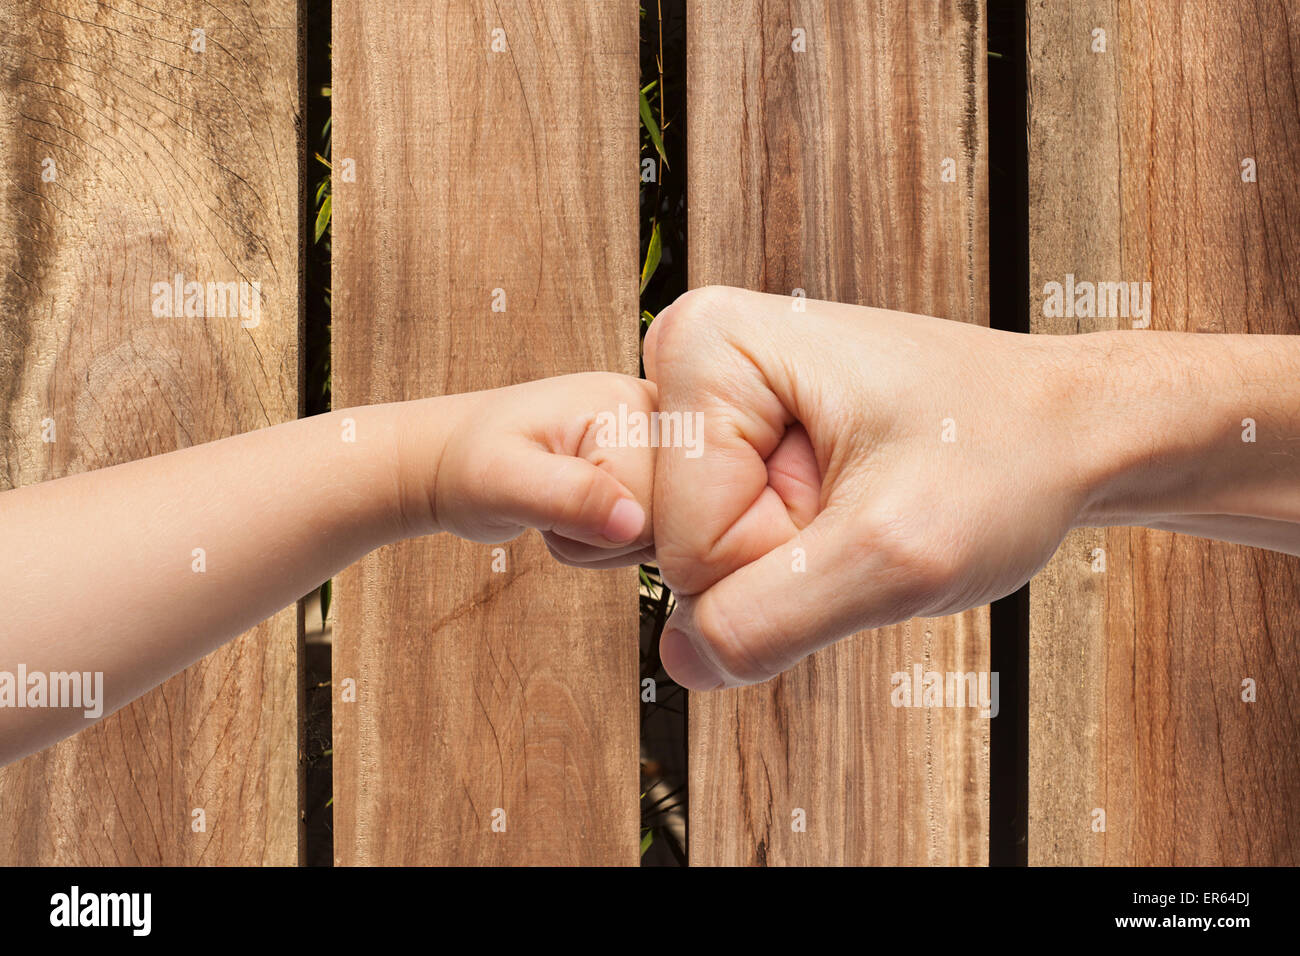 father and son punching fists/hands for agreement over a wooden background - Stock Image